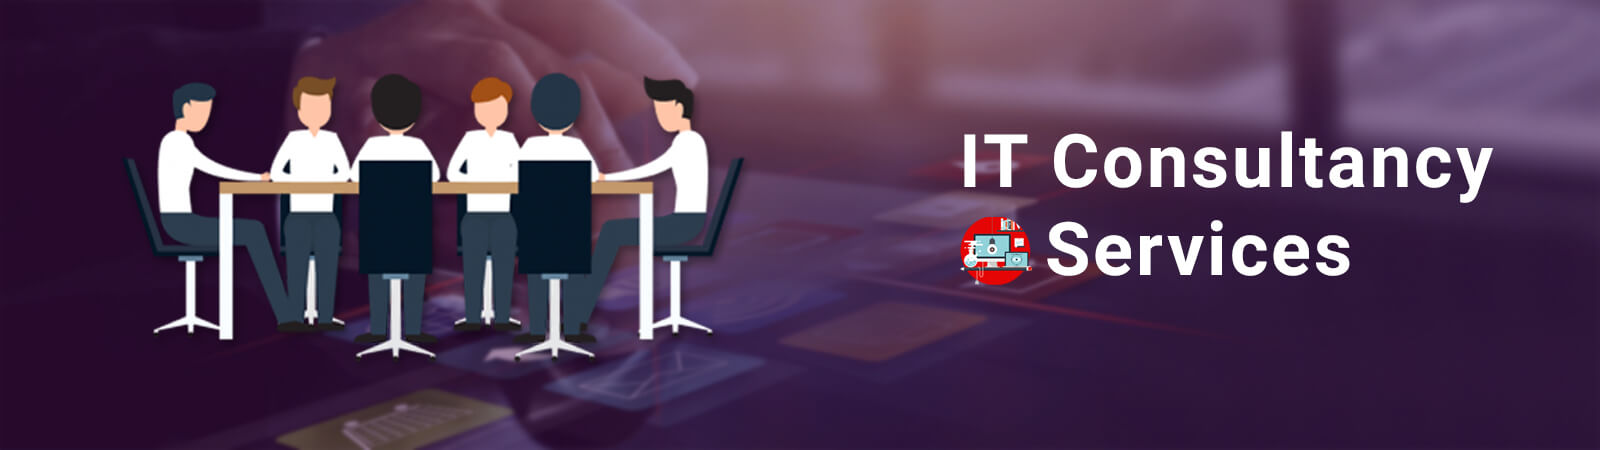 it-consultancy-services